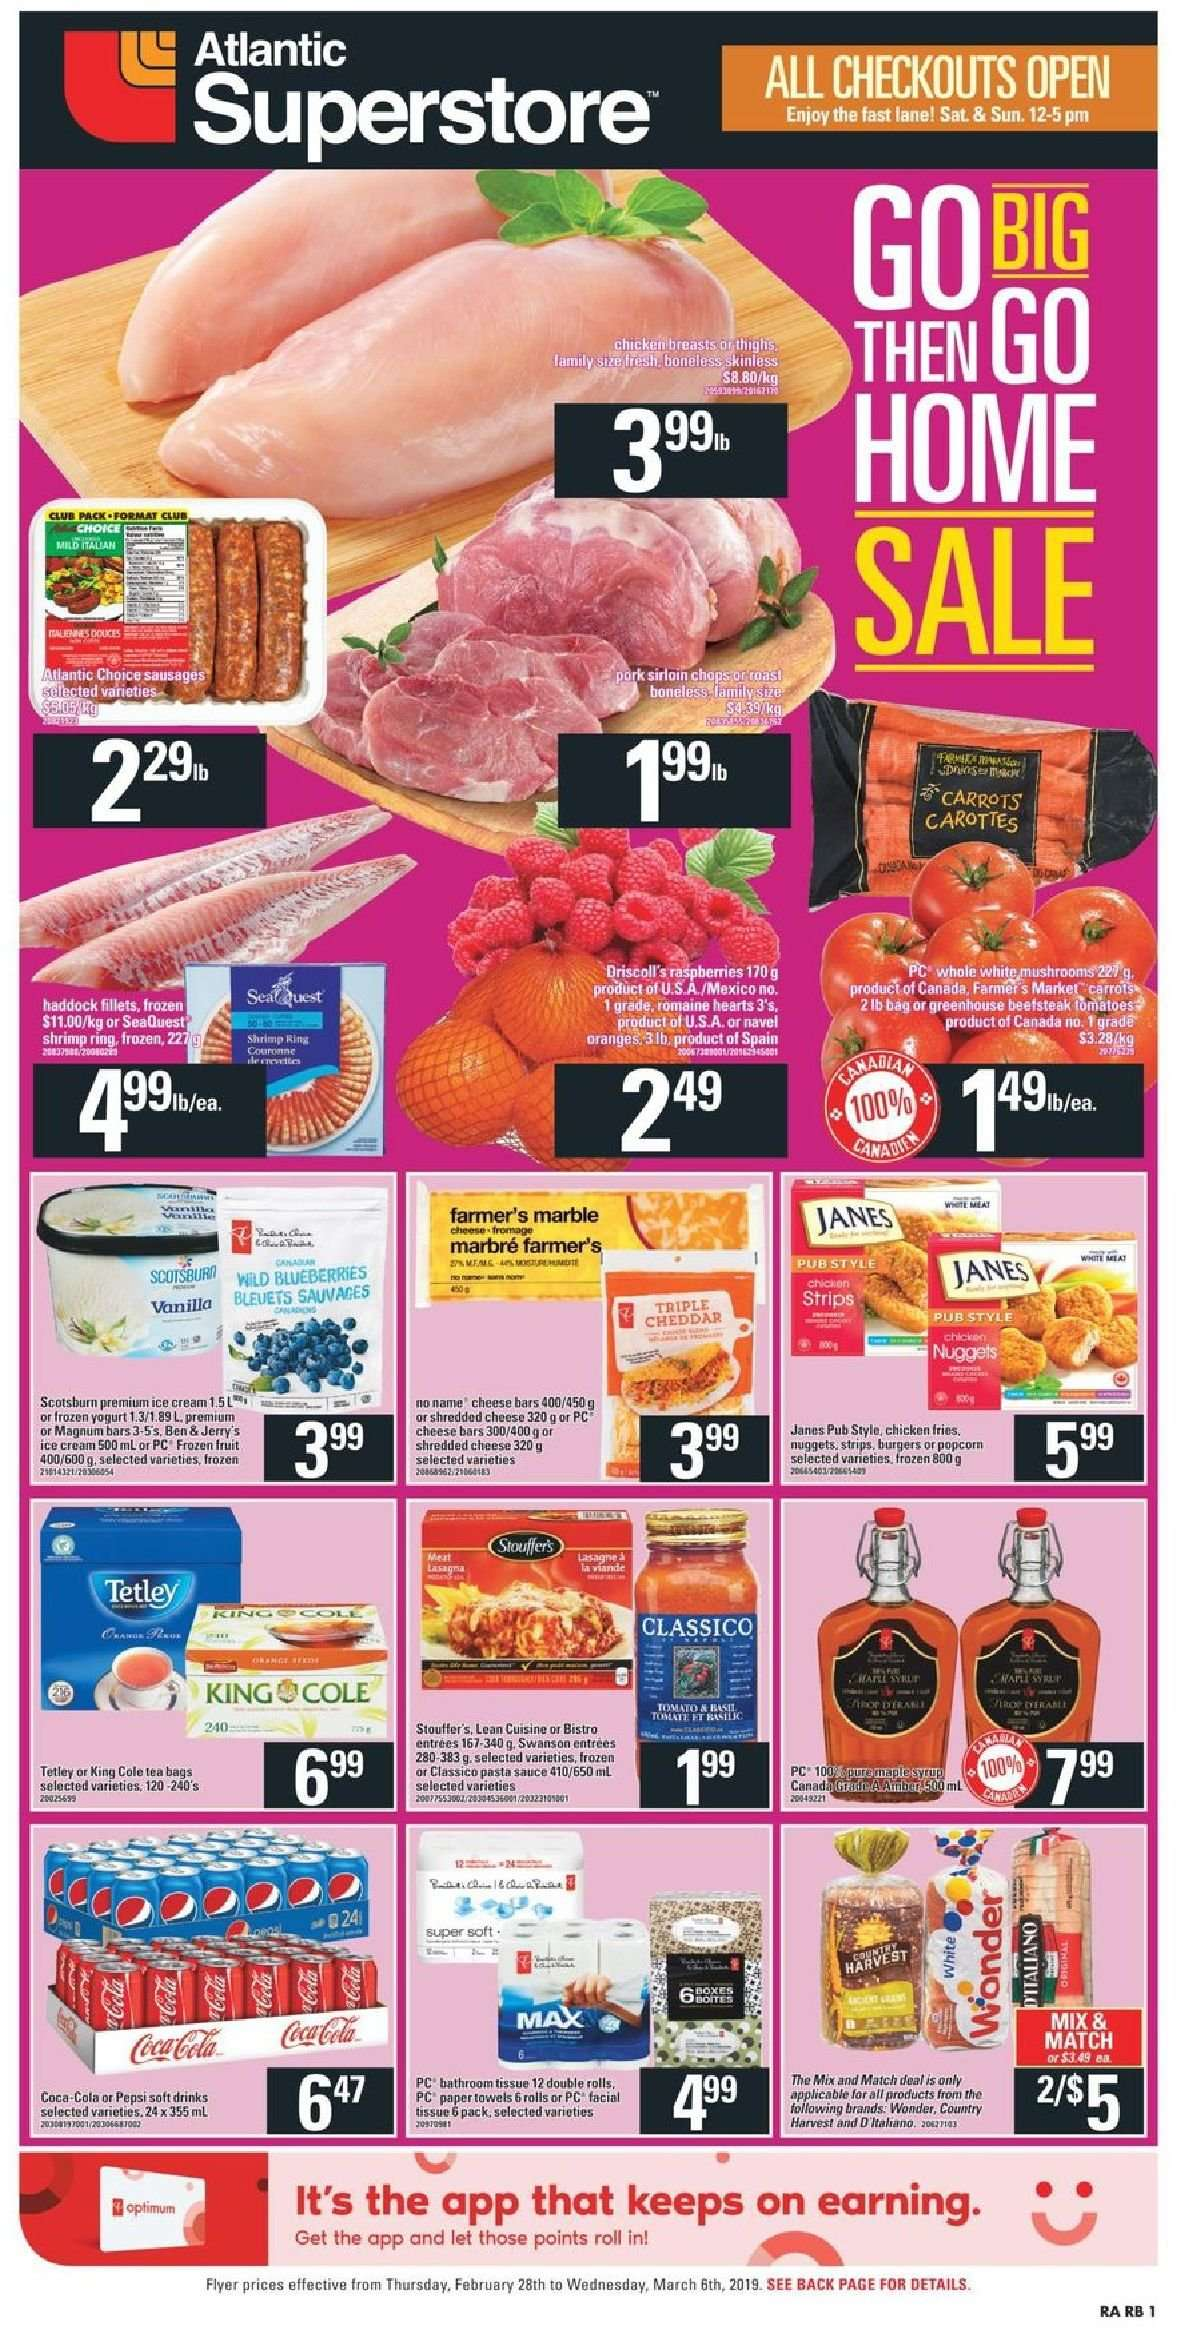 Atlantic Superstore Flyer - February 28, 2019 - March 06, 2019 - Sales products - bag, blueberries, carrots, cream, frozen, greenhouse, magnum, navel oranges, raspberries, ring, shredded cheese, shrimp, tea, tomatoes, towel, yogurt, haddock, ice cream, popcorn, pork meat, cheddar, chicken, chicken breast, paper towel, pasta sauce, pepsi, oranges, cheese, nuggets, pasta, sauce, carotte, fromage, marble. Page 1.